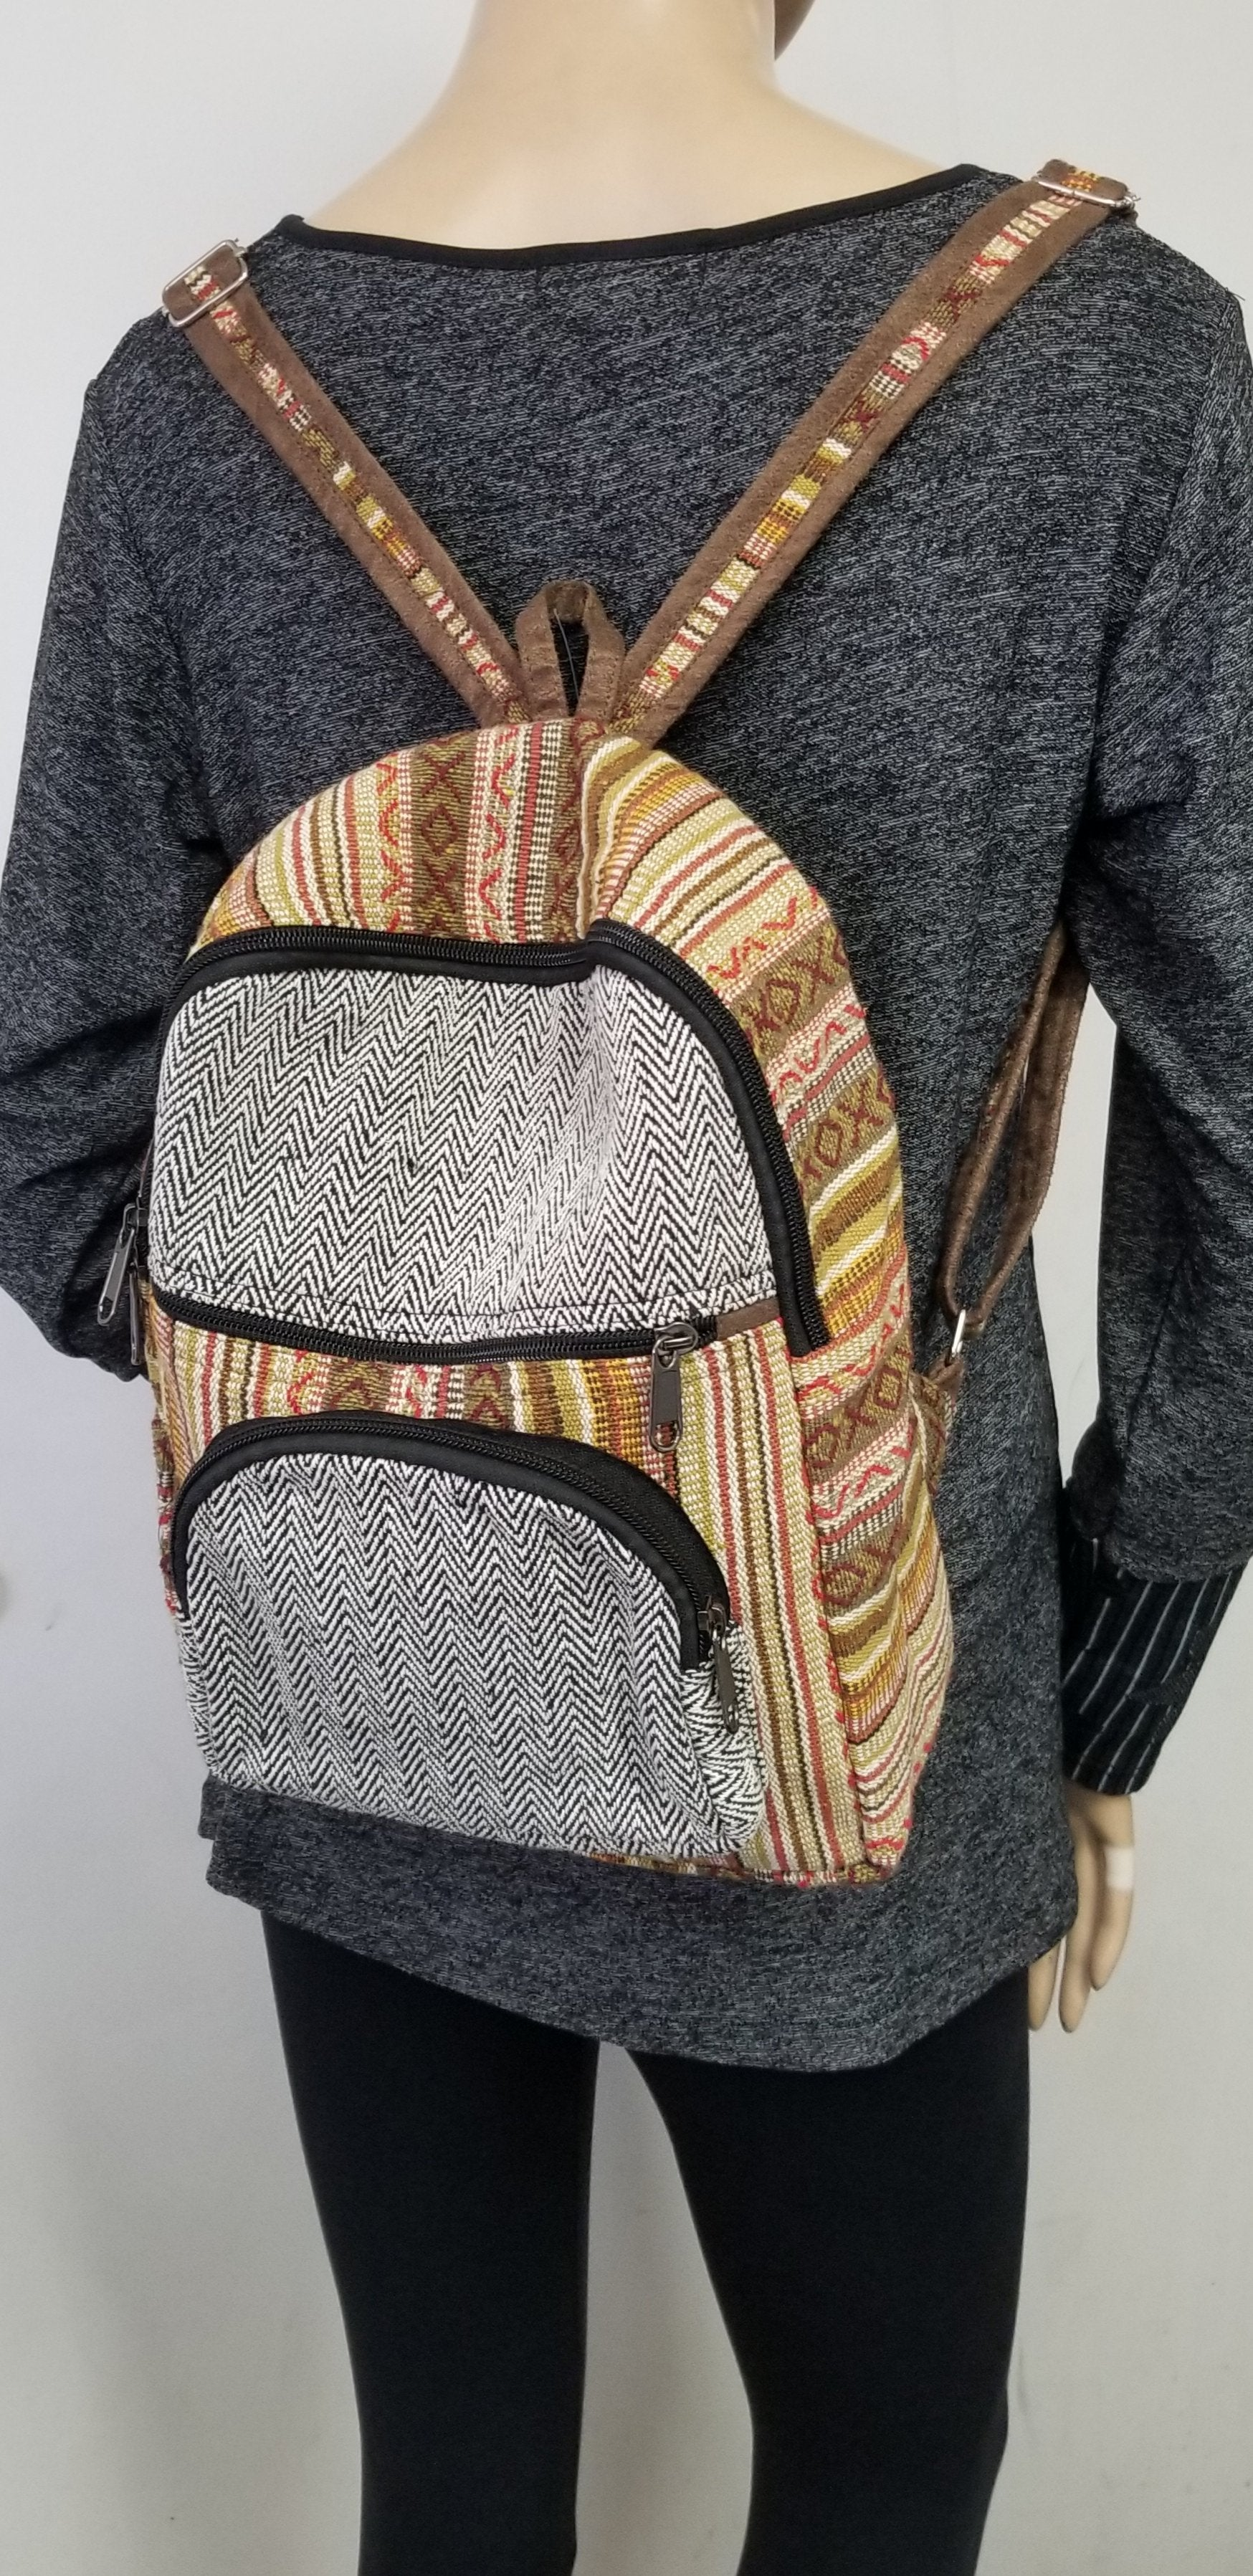 Rasta Bag | Gheri Mini Backpack Multi Color Striped Design